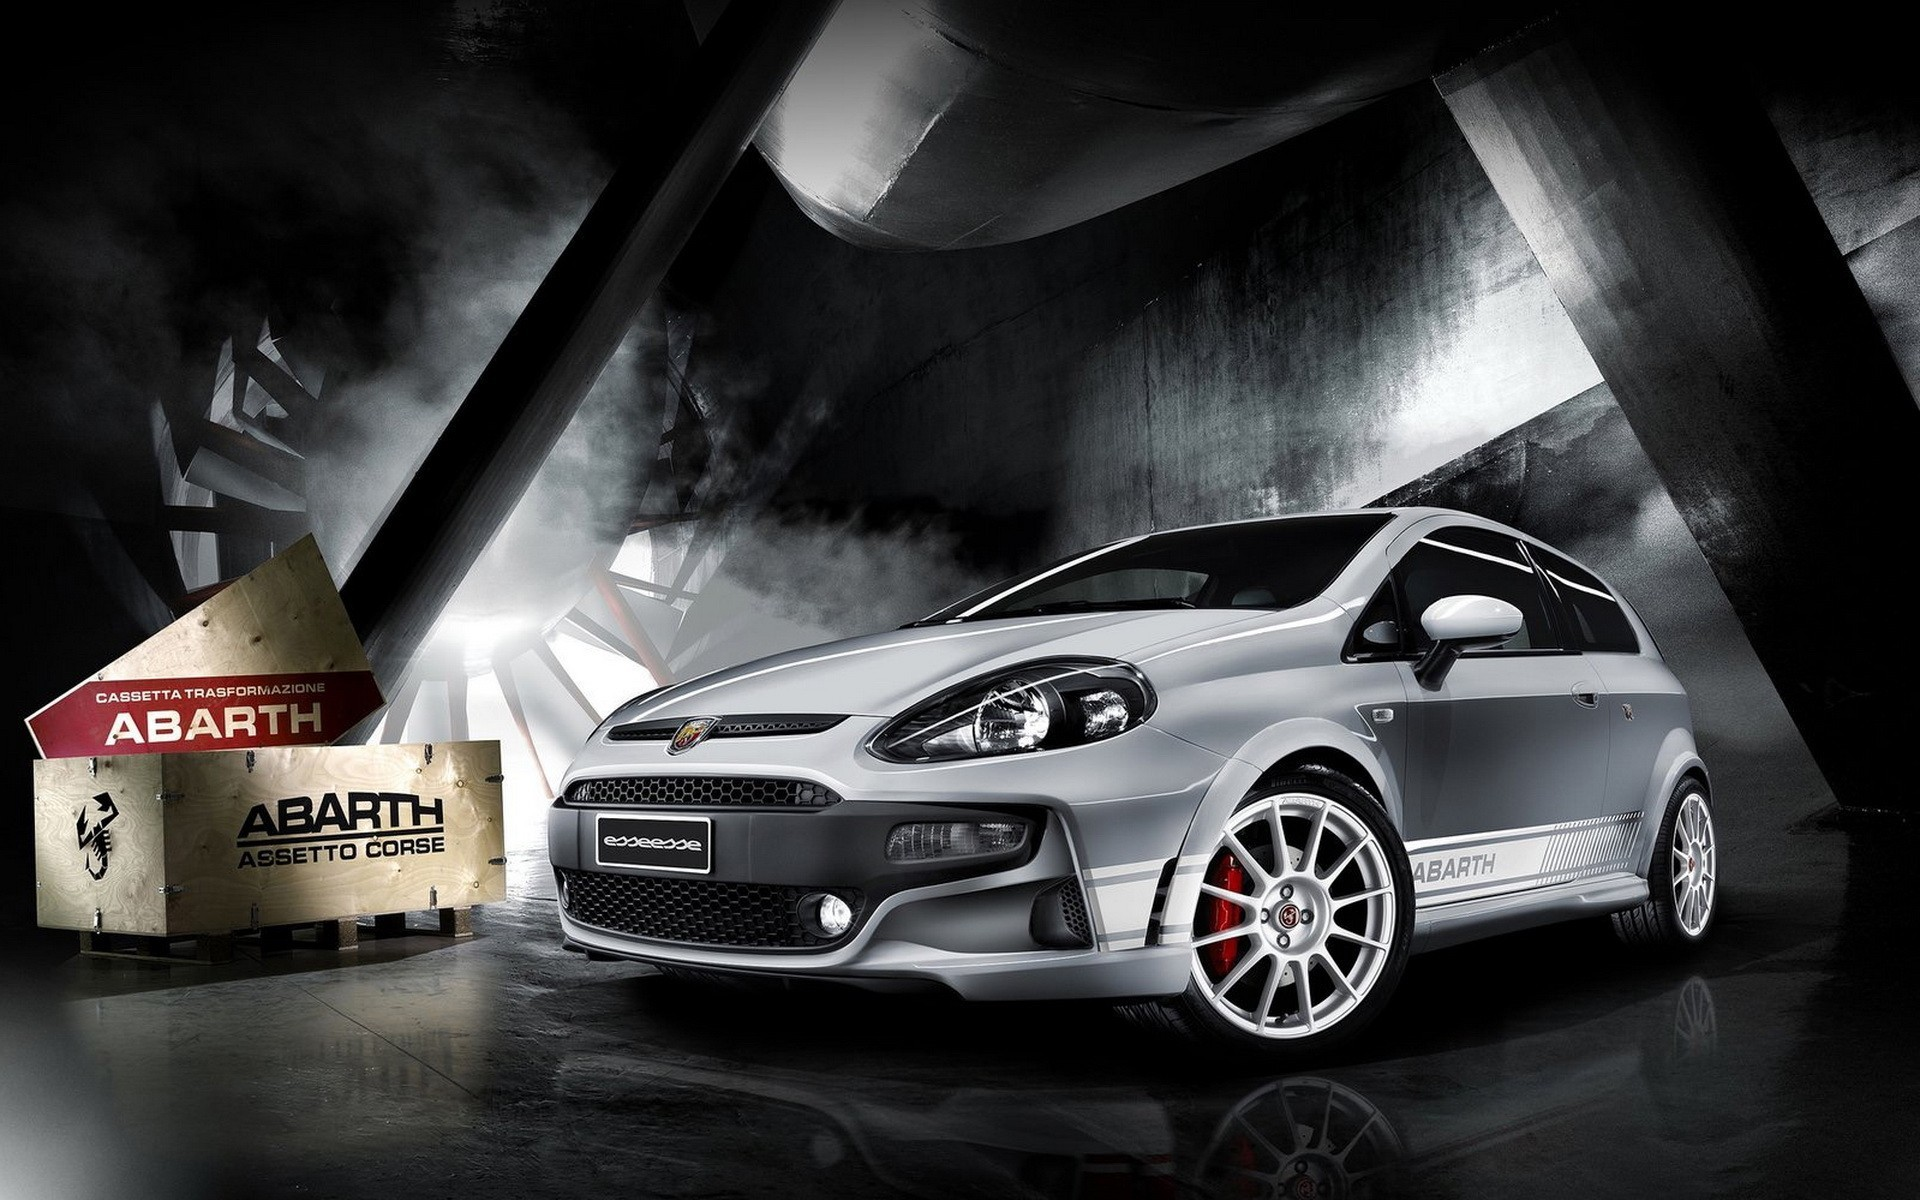 cars abarth Fiat Punto HD Wallpaper